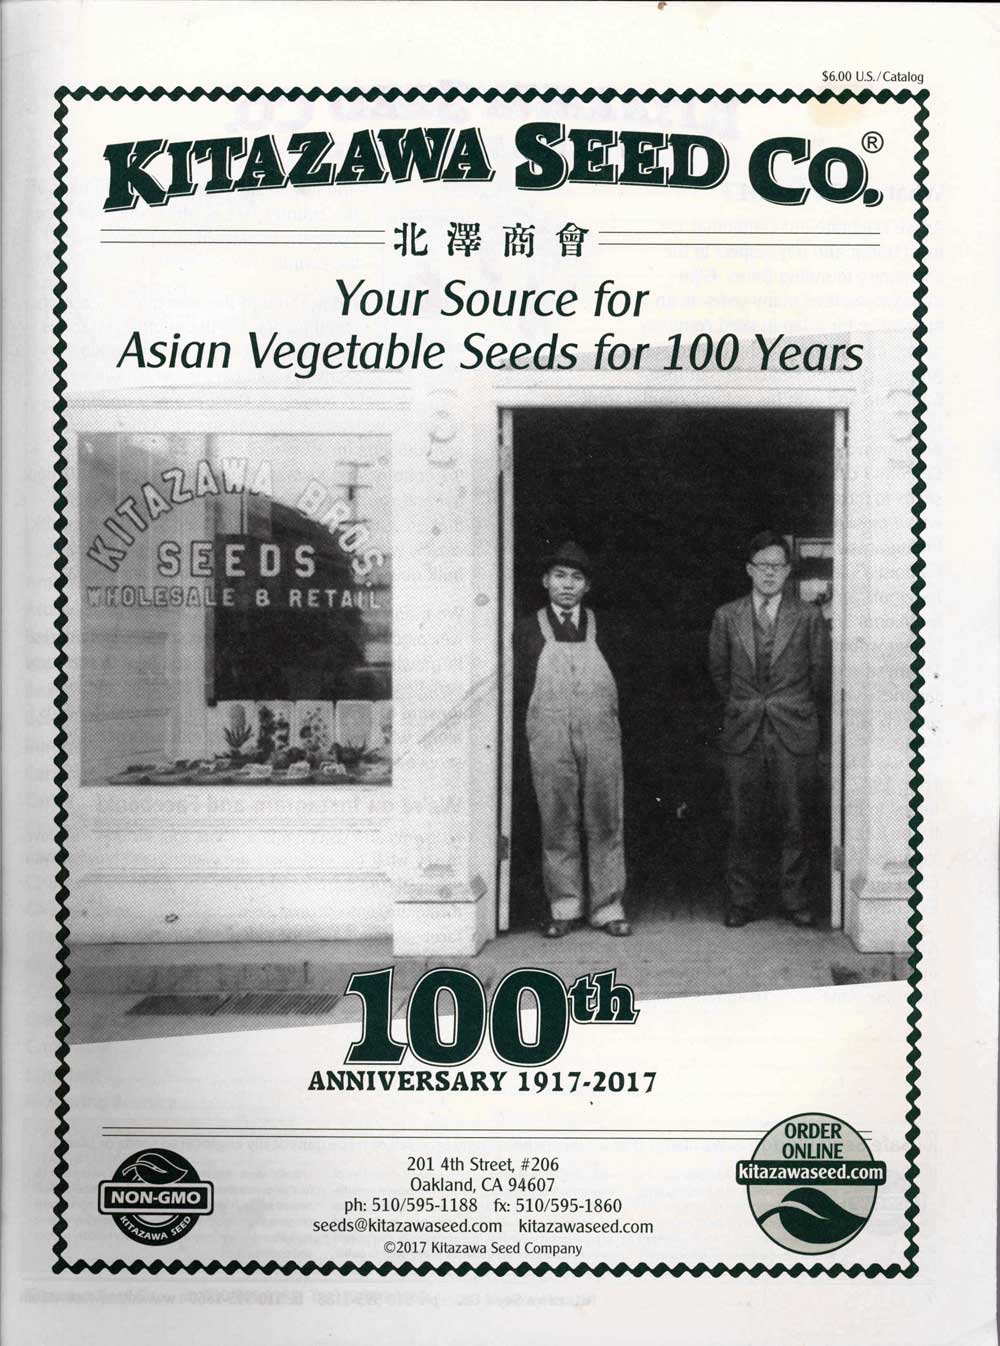 Kitazawa Seed Co., California, 8.5 x 11 in., 48 pp.